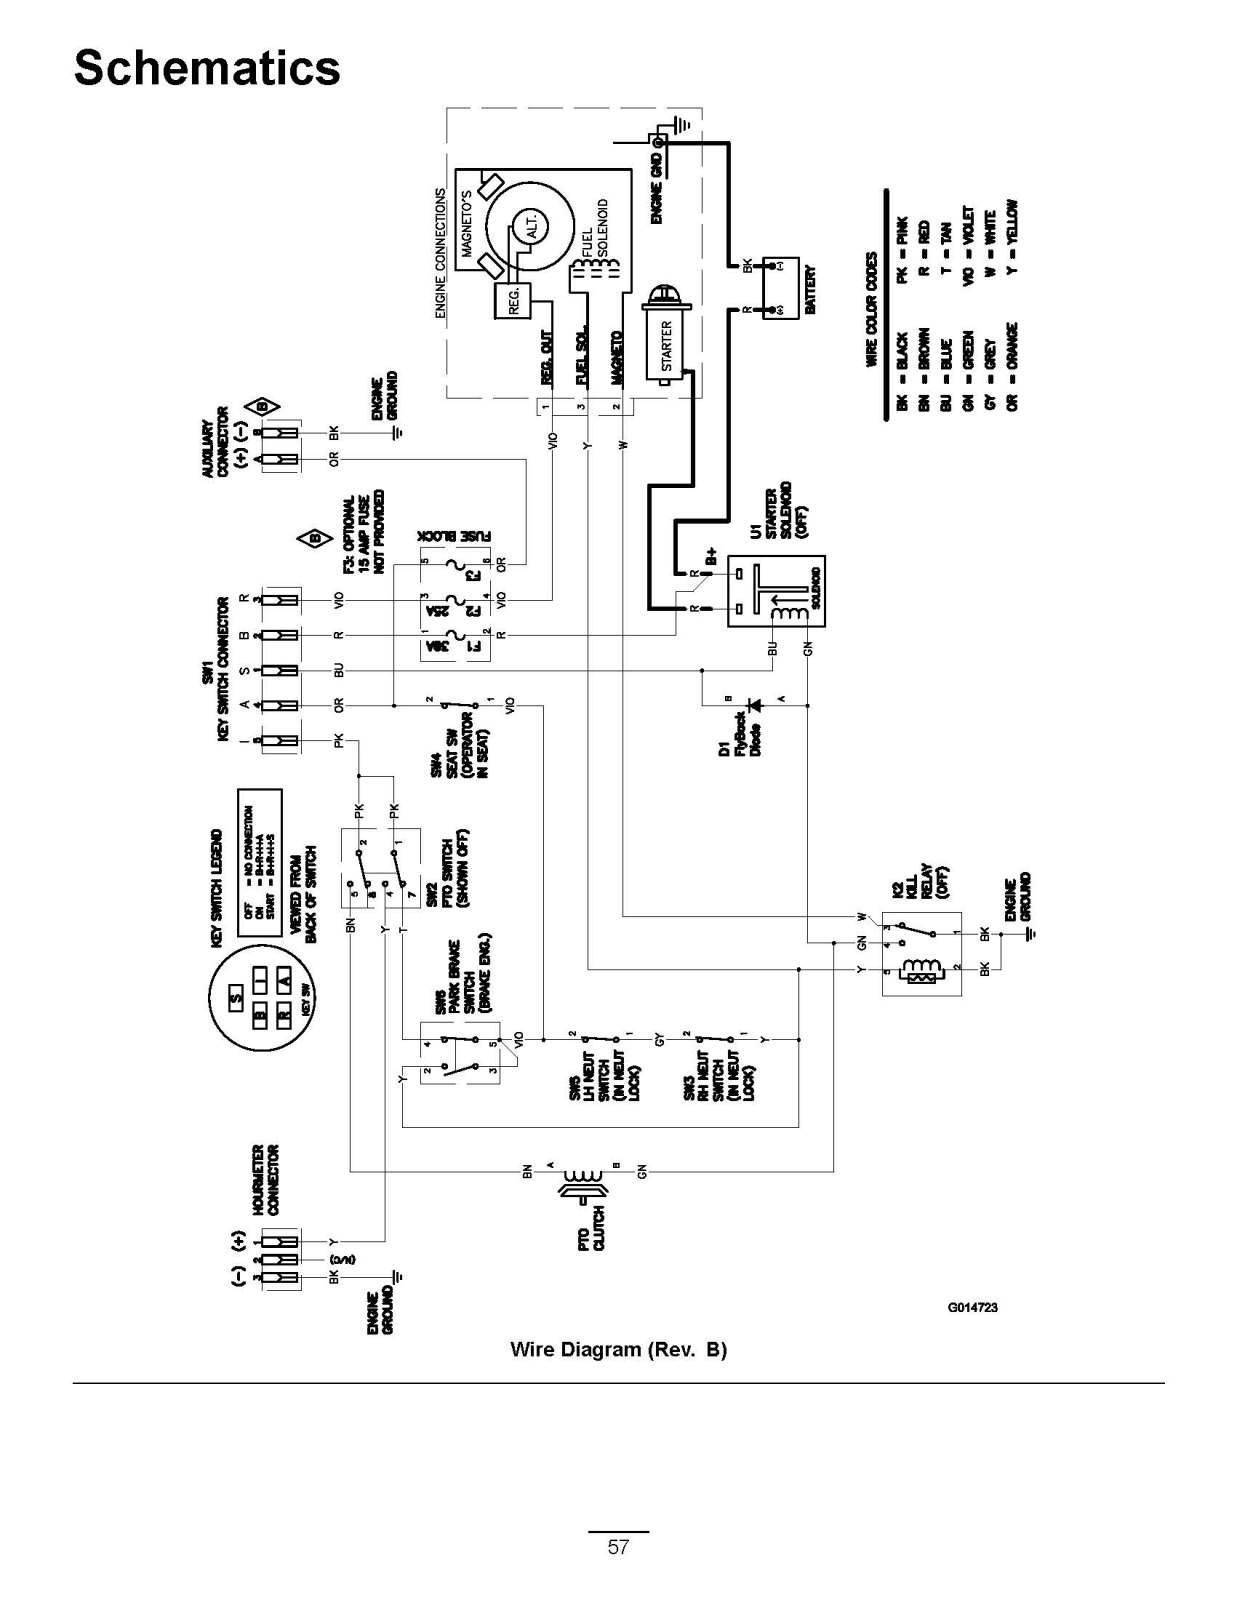 [SCHEMATICS_4FR]  Toro Wiring Schematics -Valet Wiring Diagram | Begeboy Wiring Diagram Source | Toro Timecutter Wiring Diagram Under Seat Wires |  | Begeboy Wiring Diagram Source